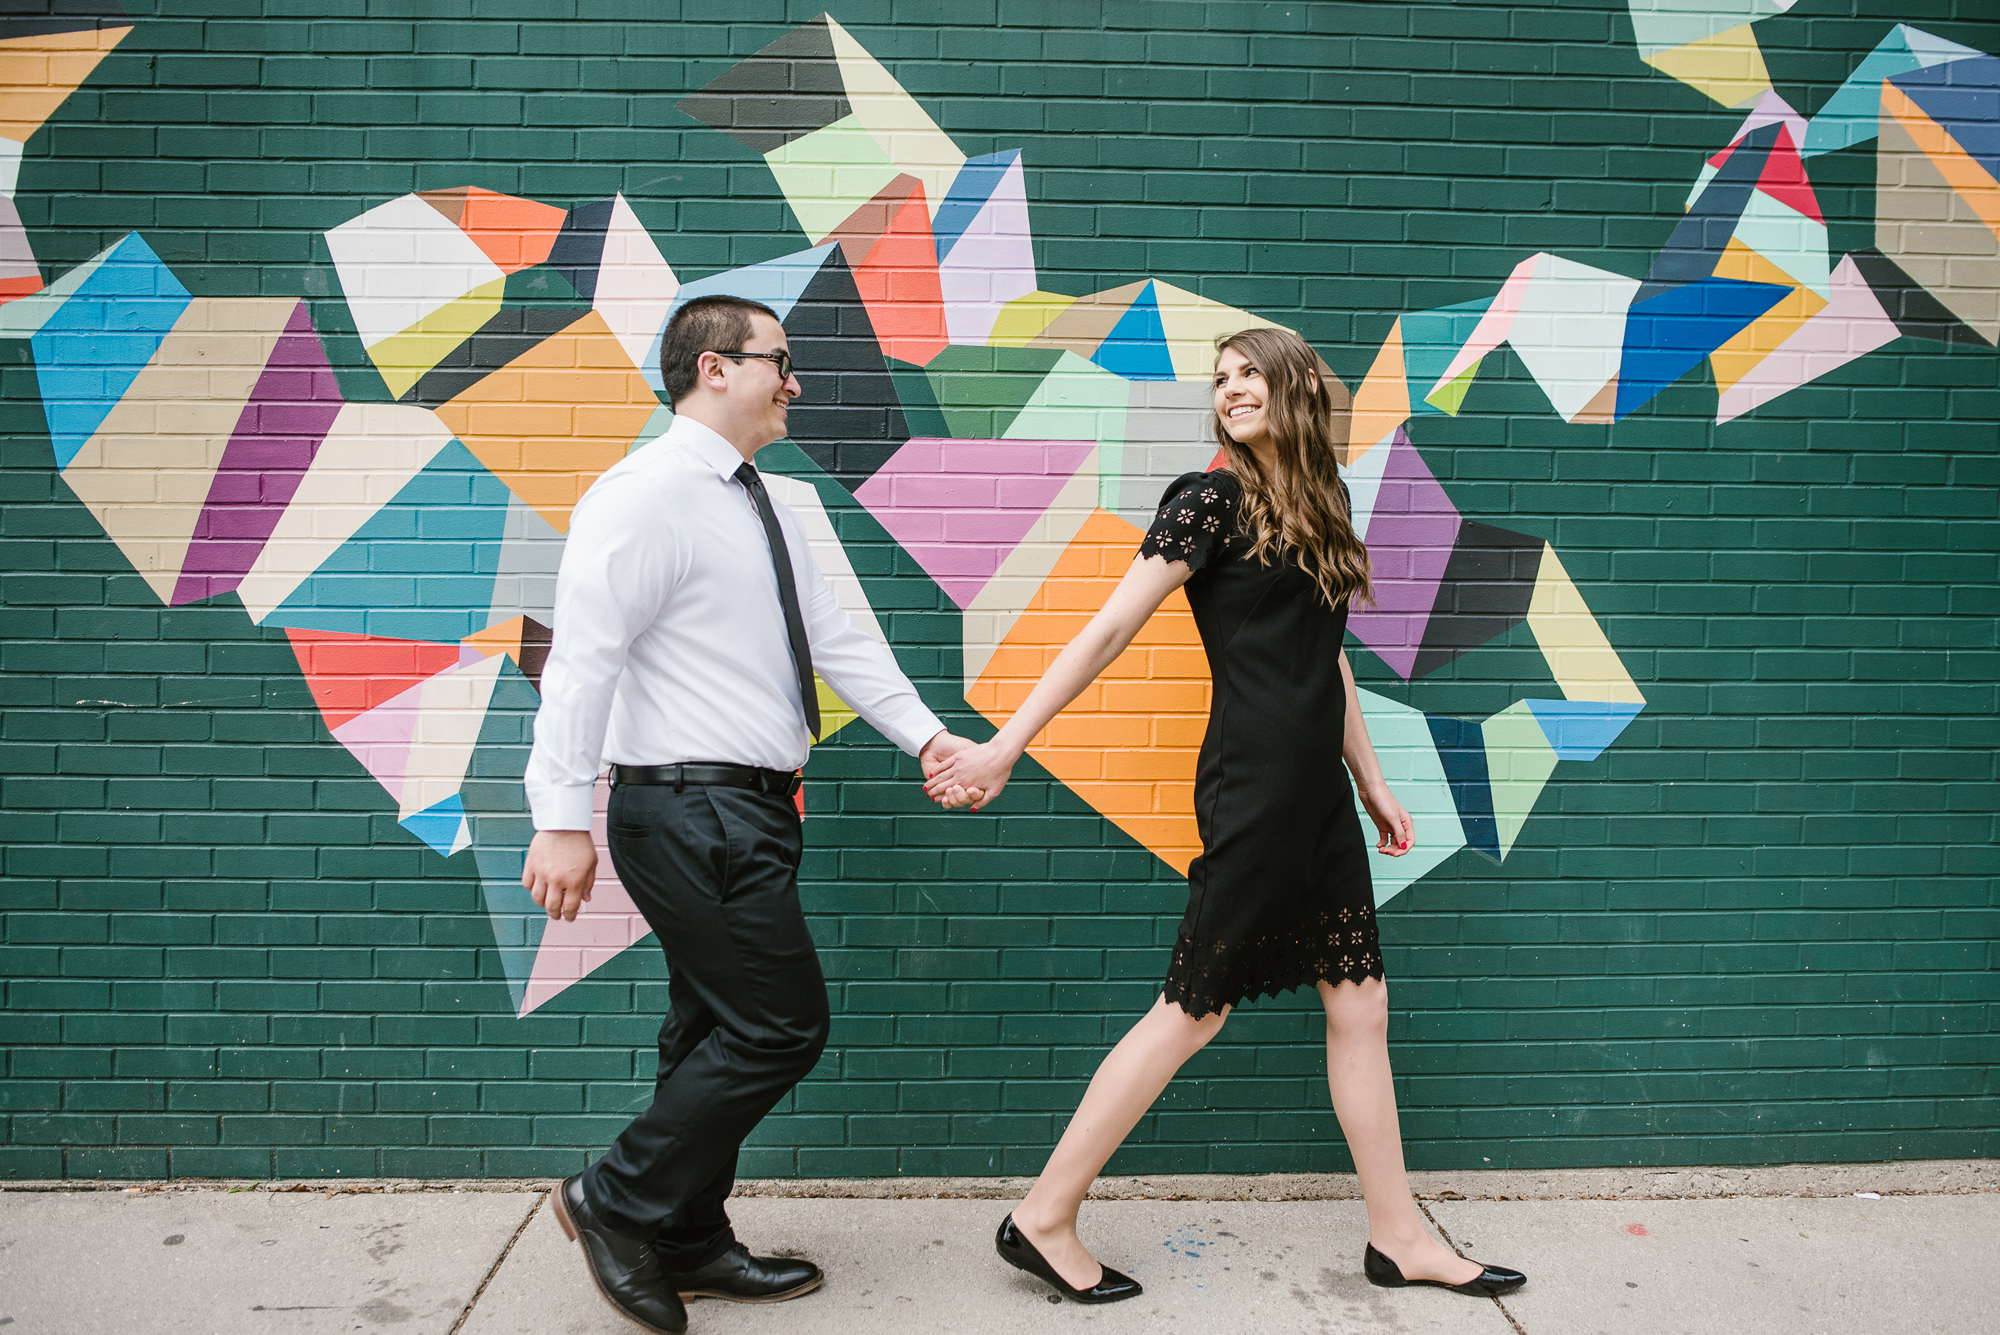 grand-rapids-downtown-spring-engagement-session (7).jpg